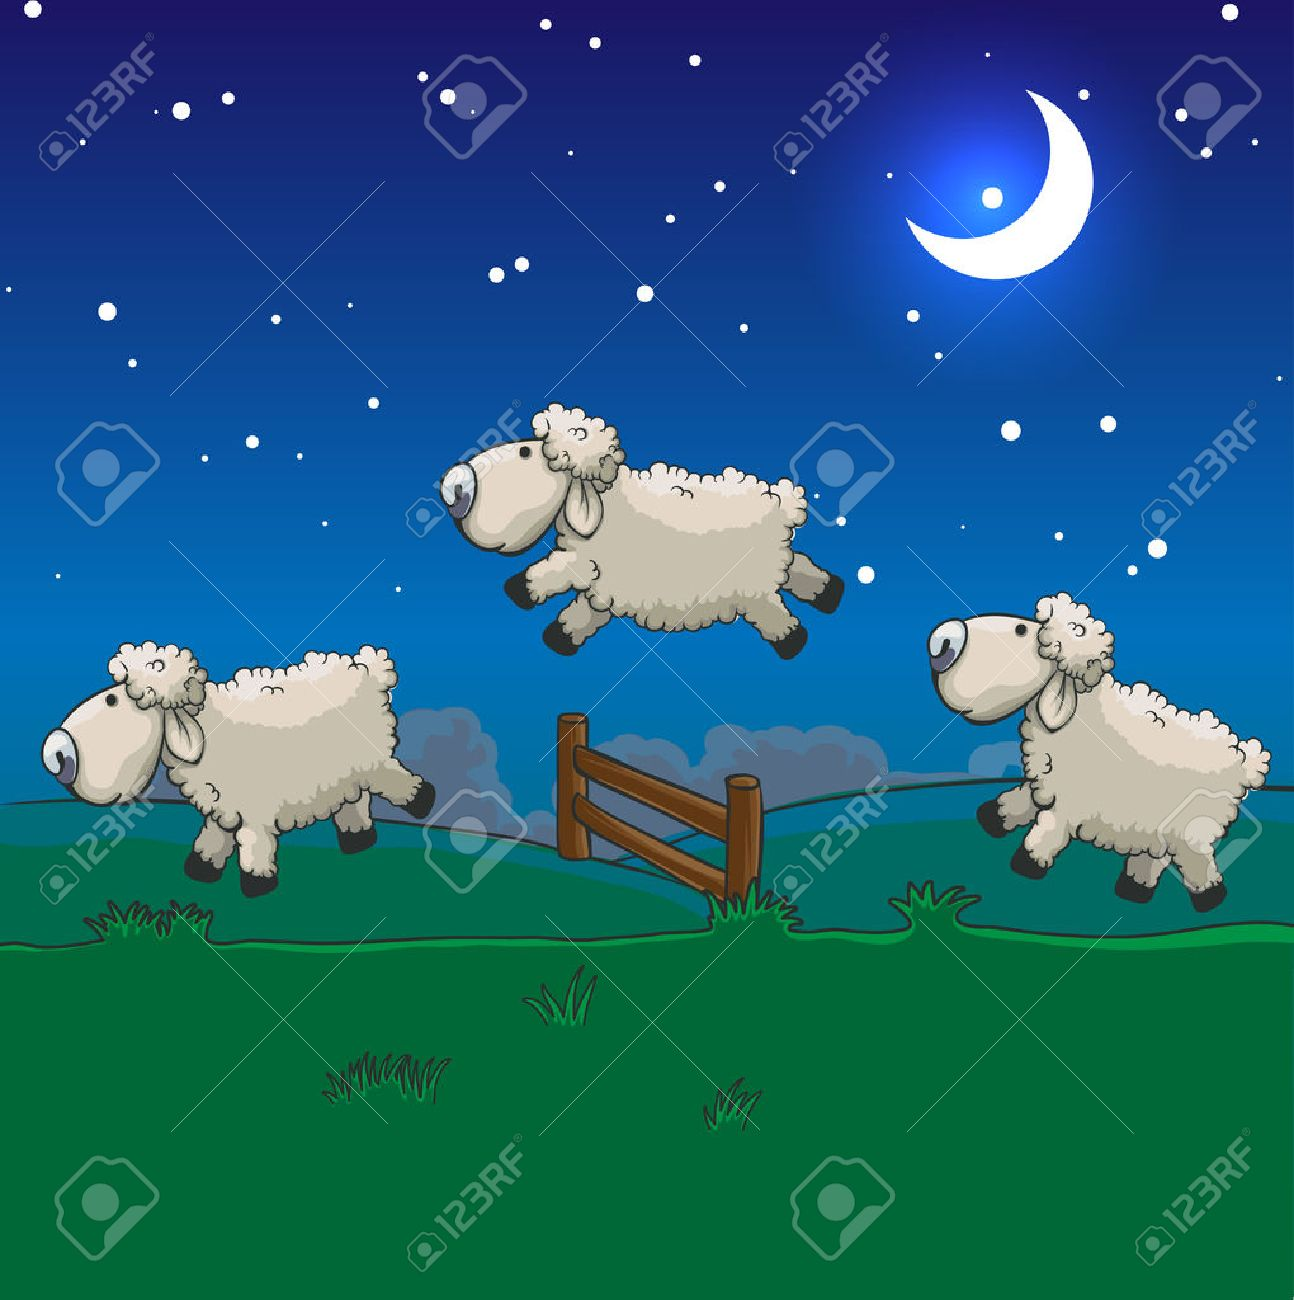 Three sheep jumping over the fence. Count them to sleep. - 25929653